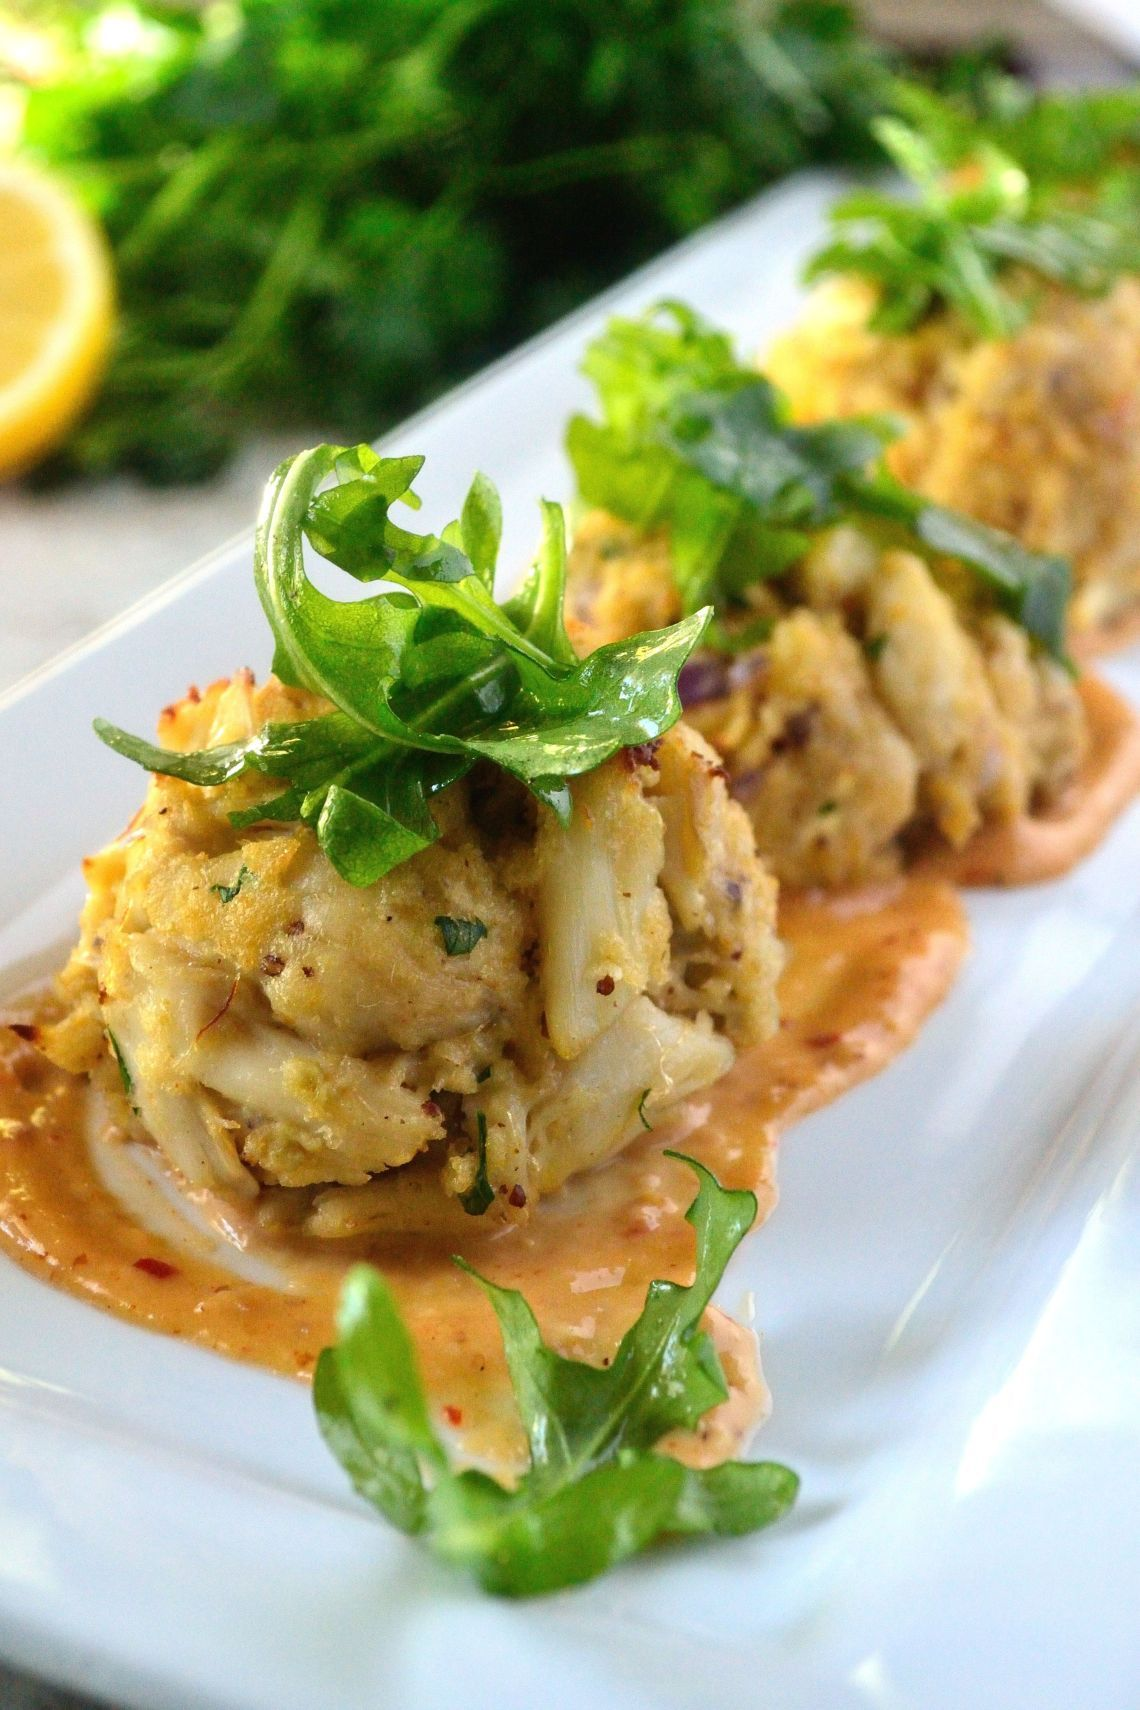 Crab cakes with spicy creole mustard aioli recipe